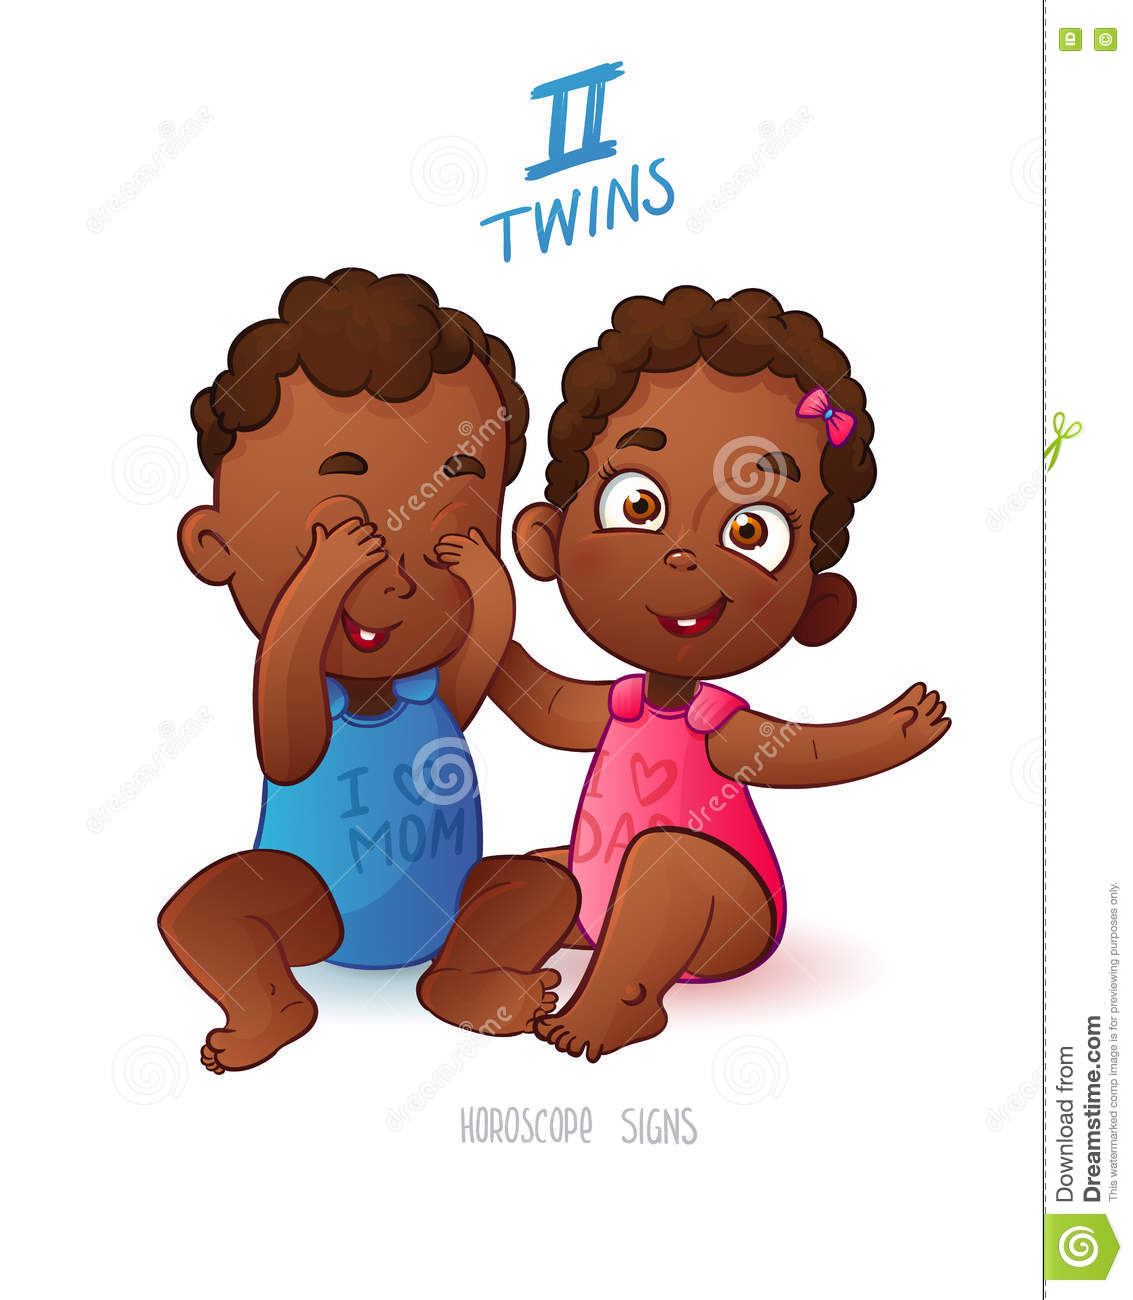 Twins horoscope sign two cartoon african american babies boy and girl playing each other